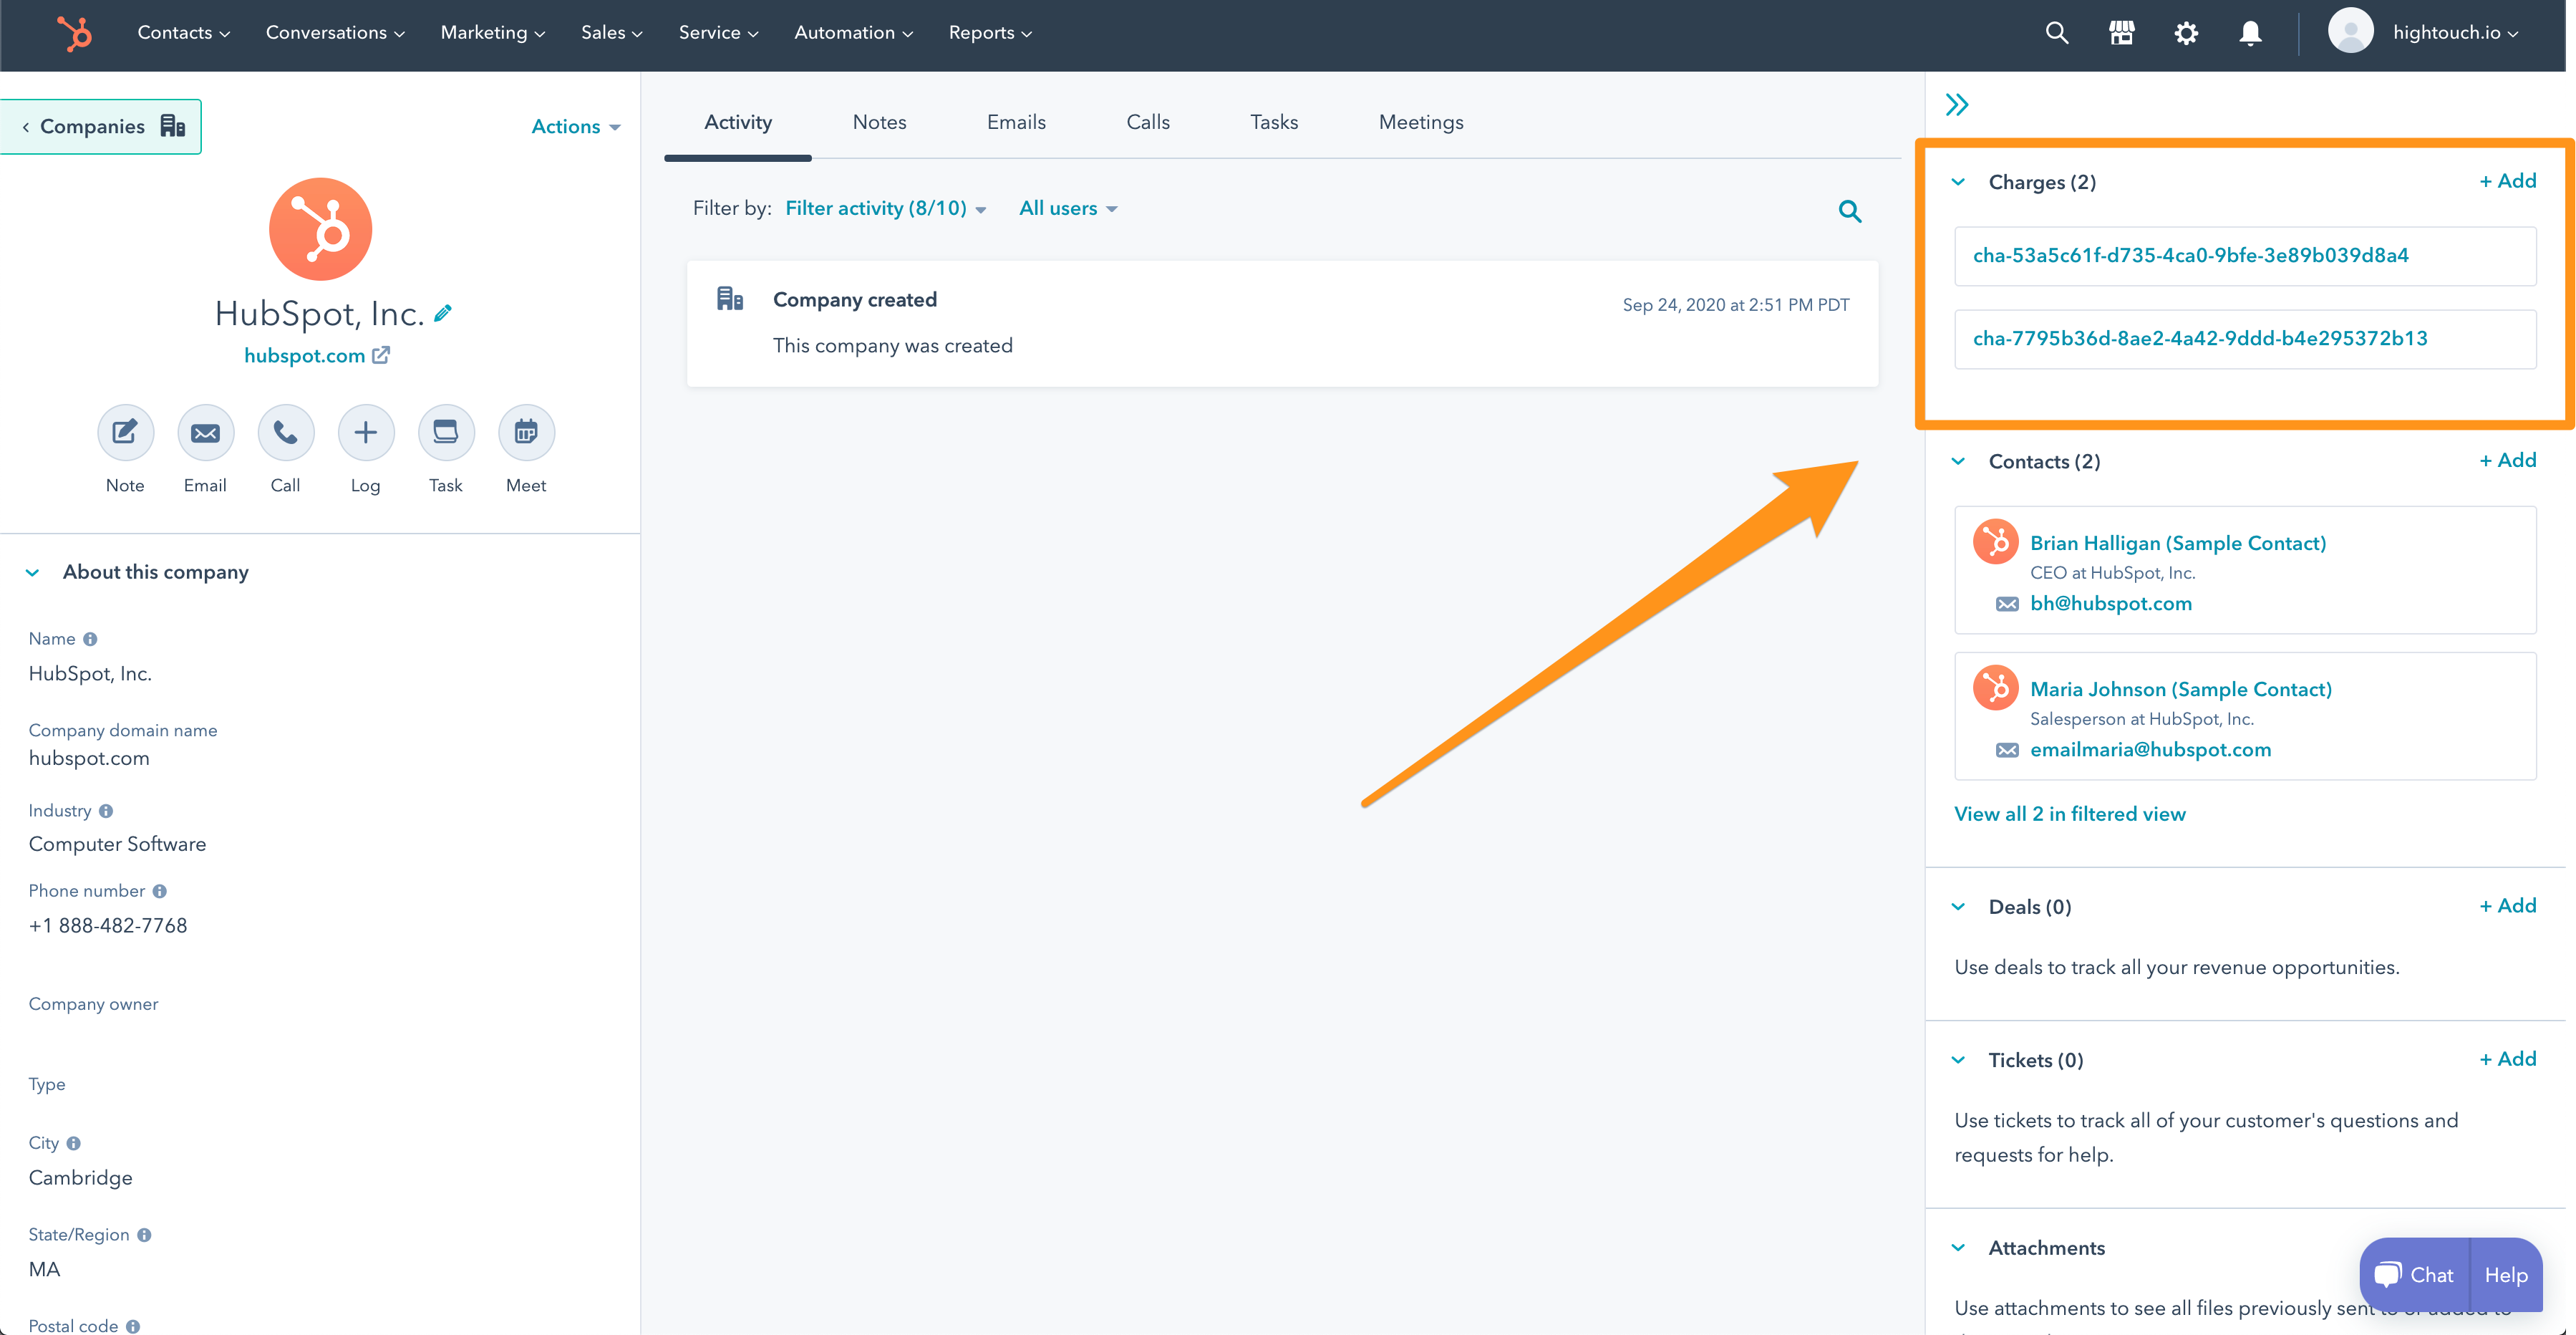 how-to-sync-custom-objects-and-fields-from-your-data-warehouse-to-hubspot 9.png